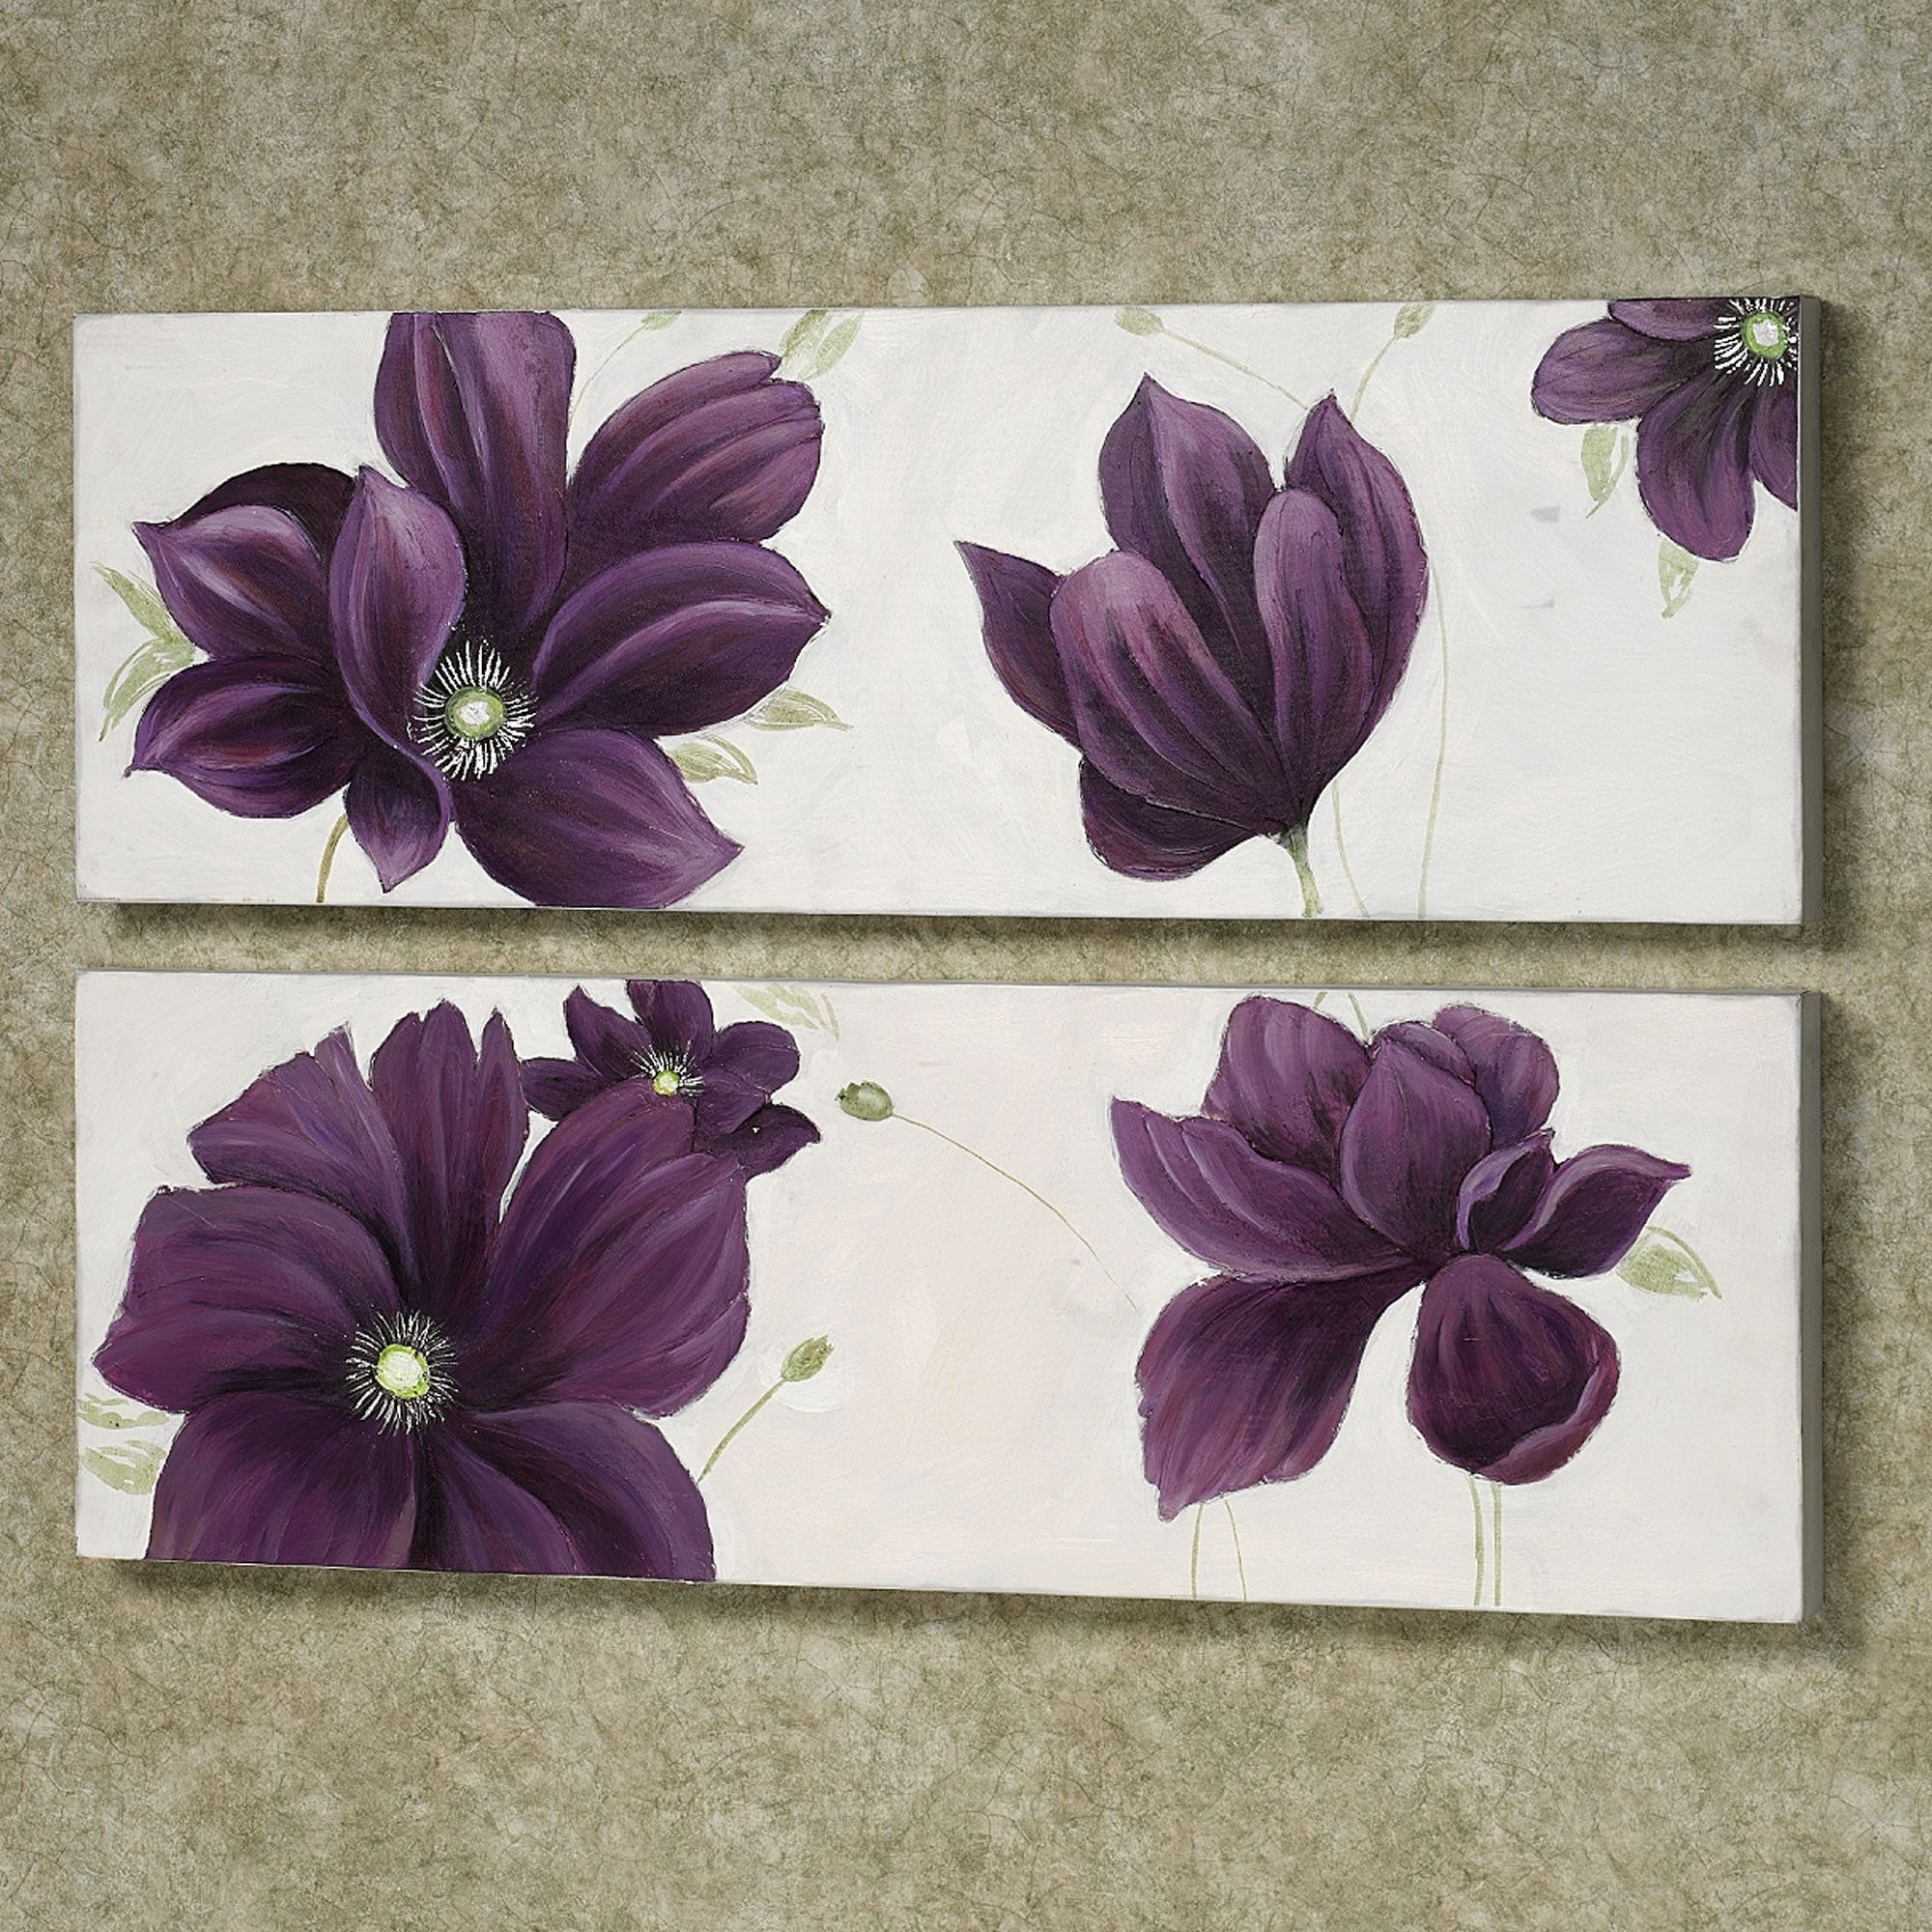 Floral Whispers Canvas Wall Art Set | Ideas For My New Home With Regard To Newest Purple And Grey Wall Art (View 11 of 20)